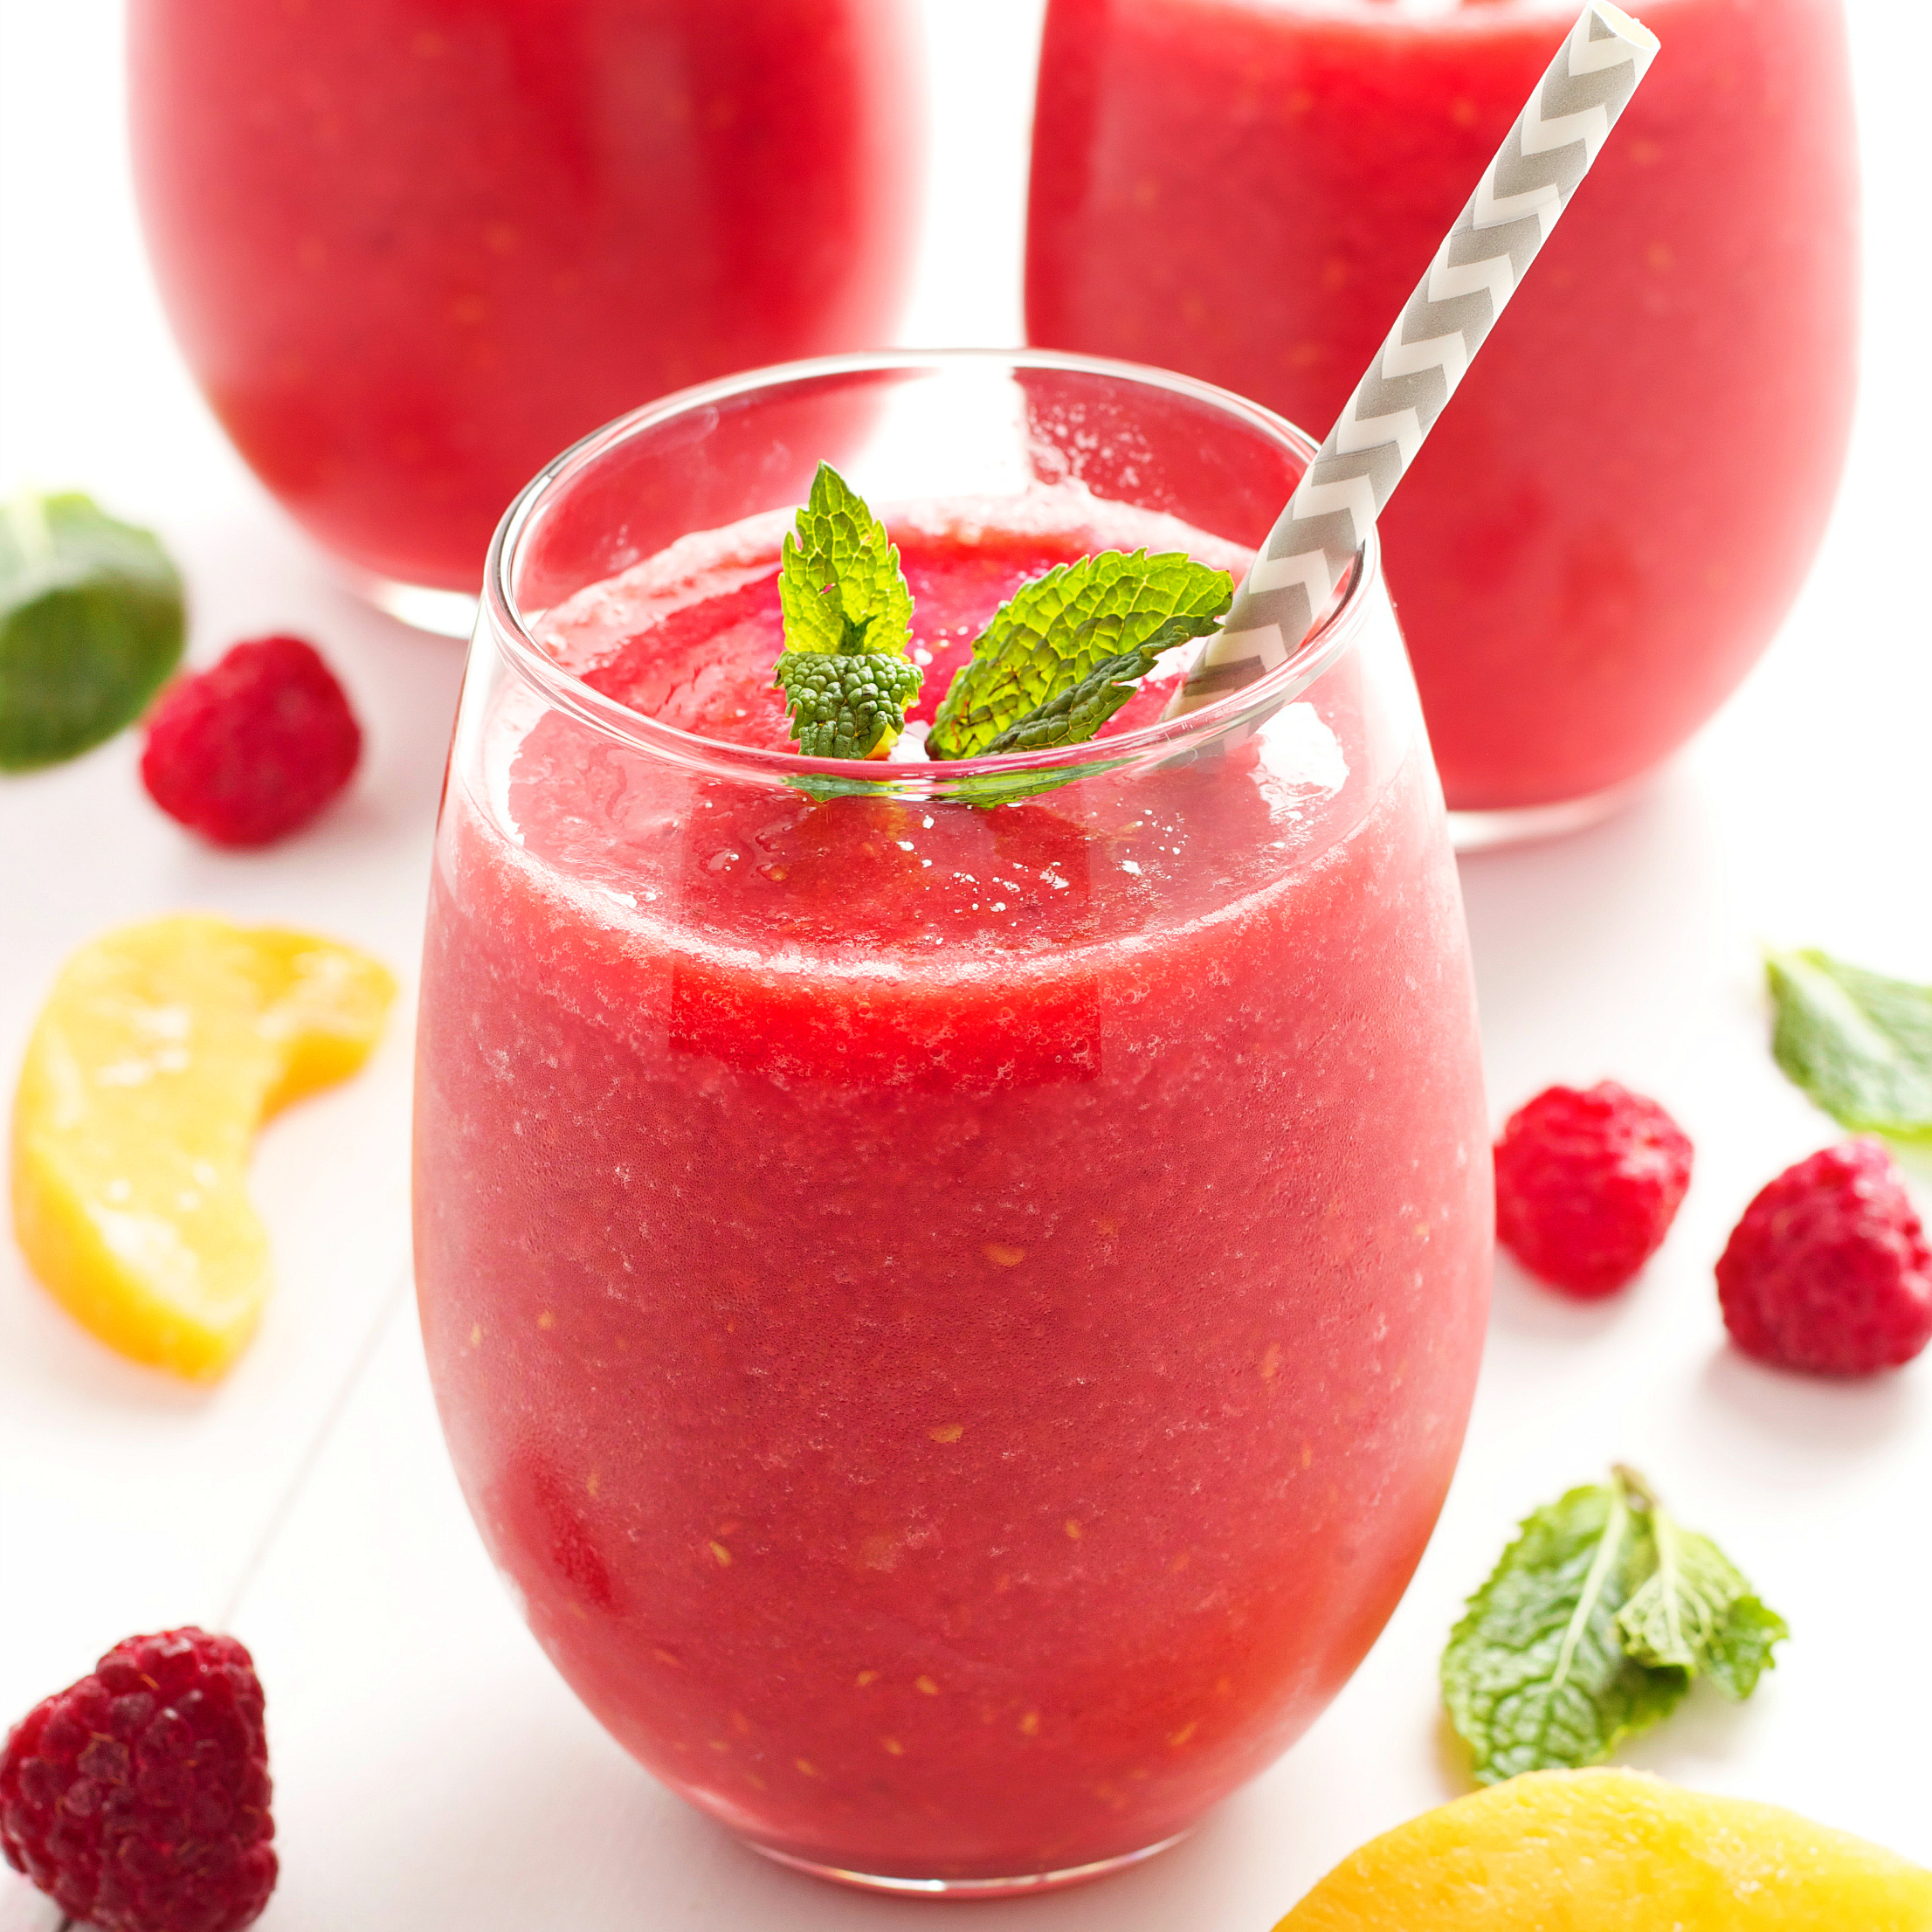 Raspberry Peach Green Tea Smoothie